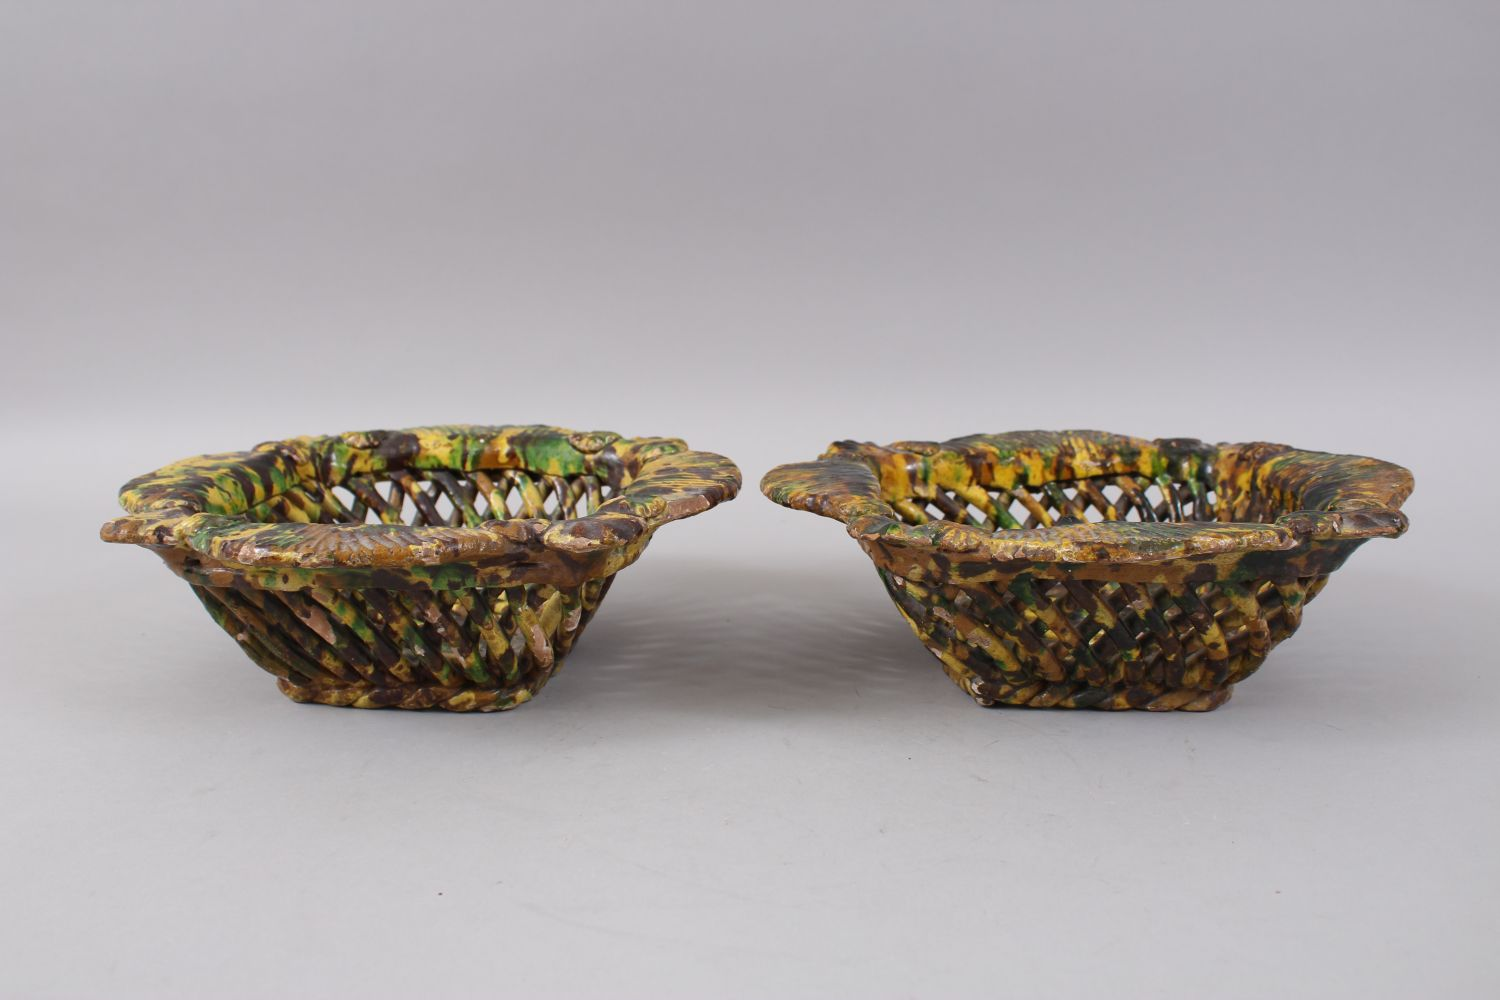 Lot 29 - A RARE PAIR OF 19TH CENTURY TURKISH OTTOMAN CANAKKALE POTTERY PIERCED YELLOW GROUND BASKETS, 25cm